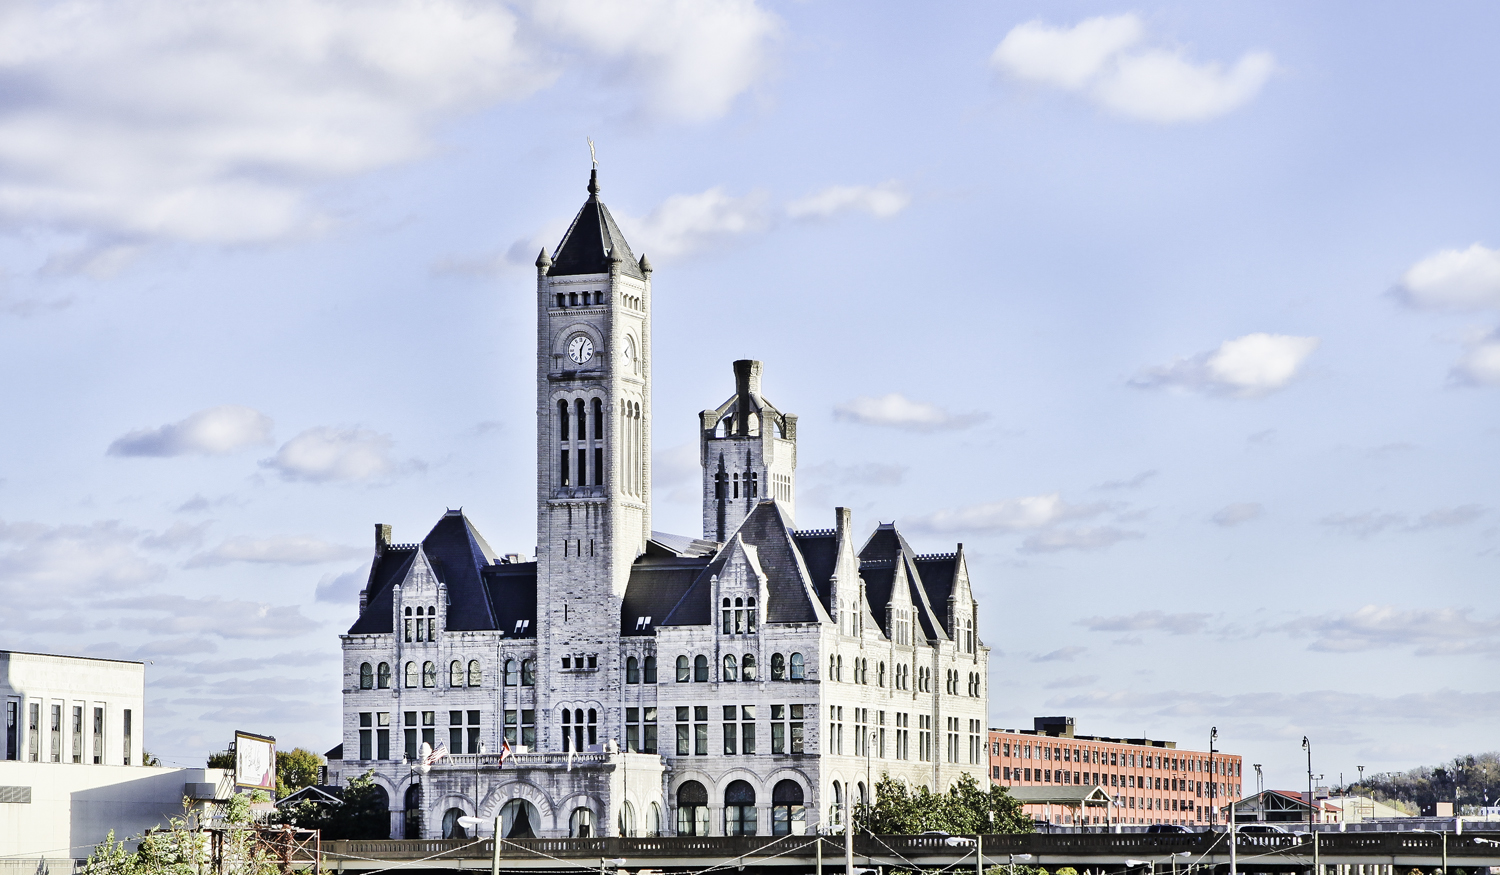 Nashville's Union Station 2013